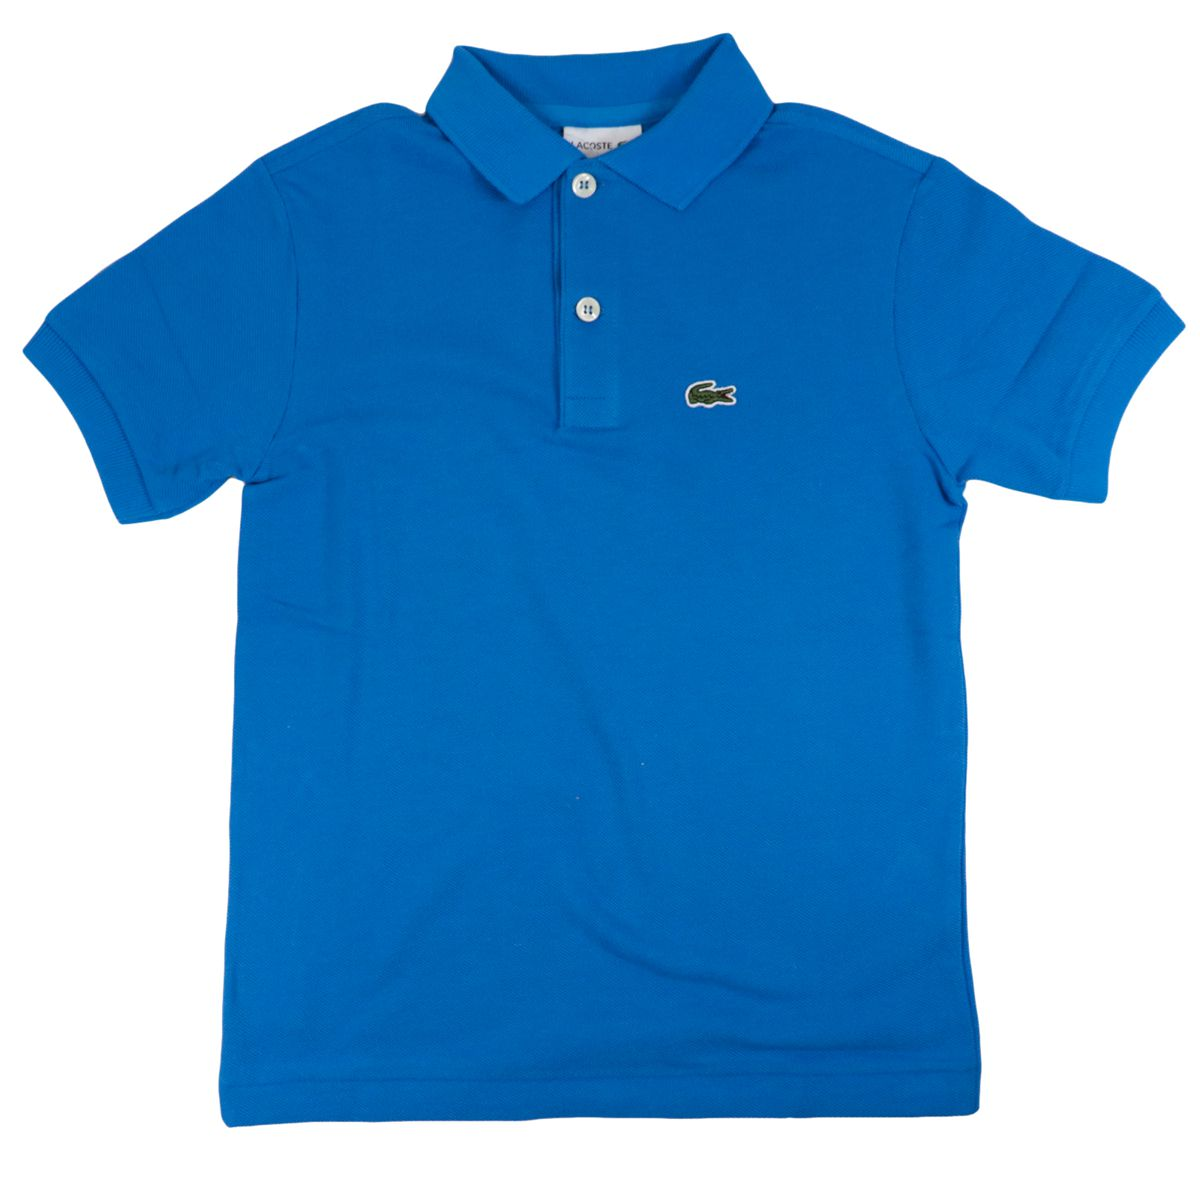 Cotton piqué polo shirt with 2 buttons with logo Bluette Lacoste